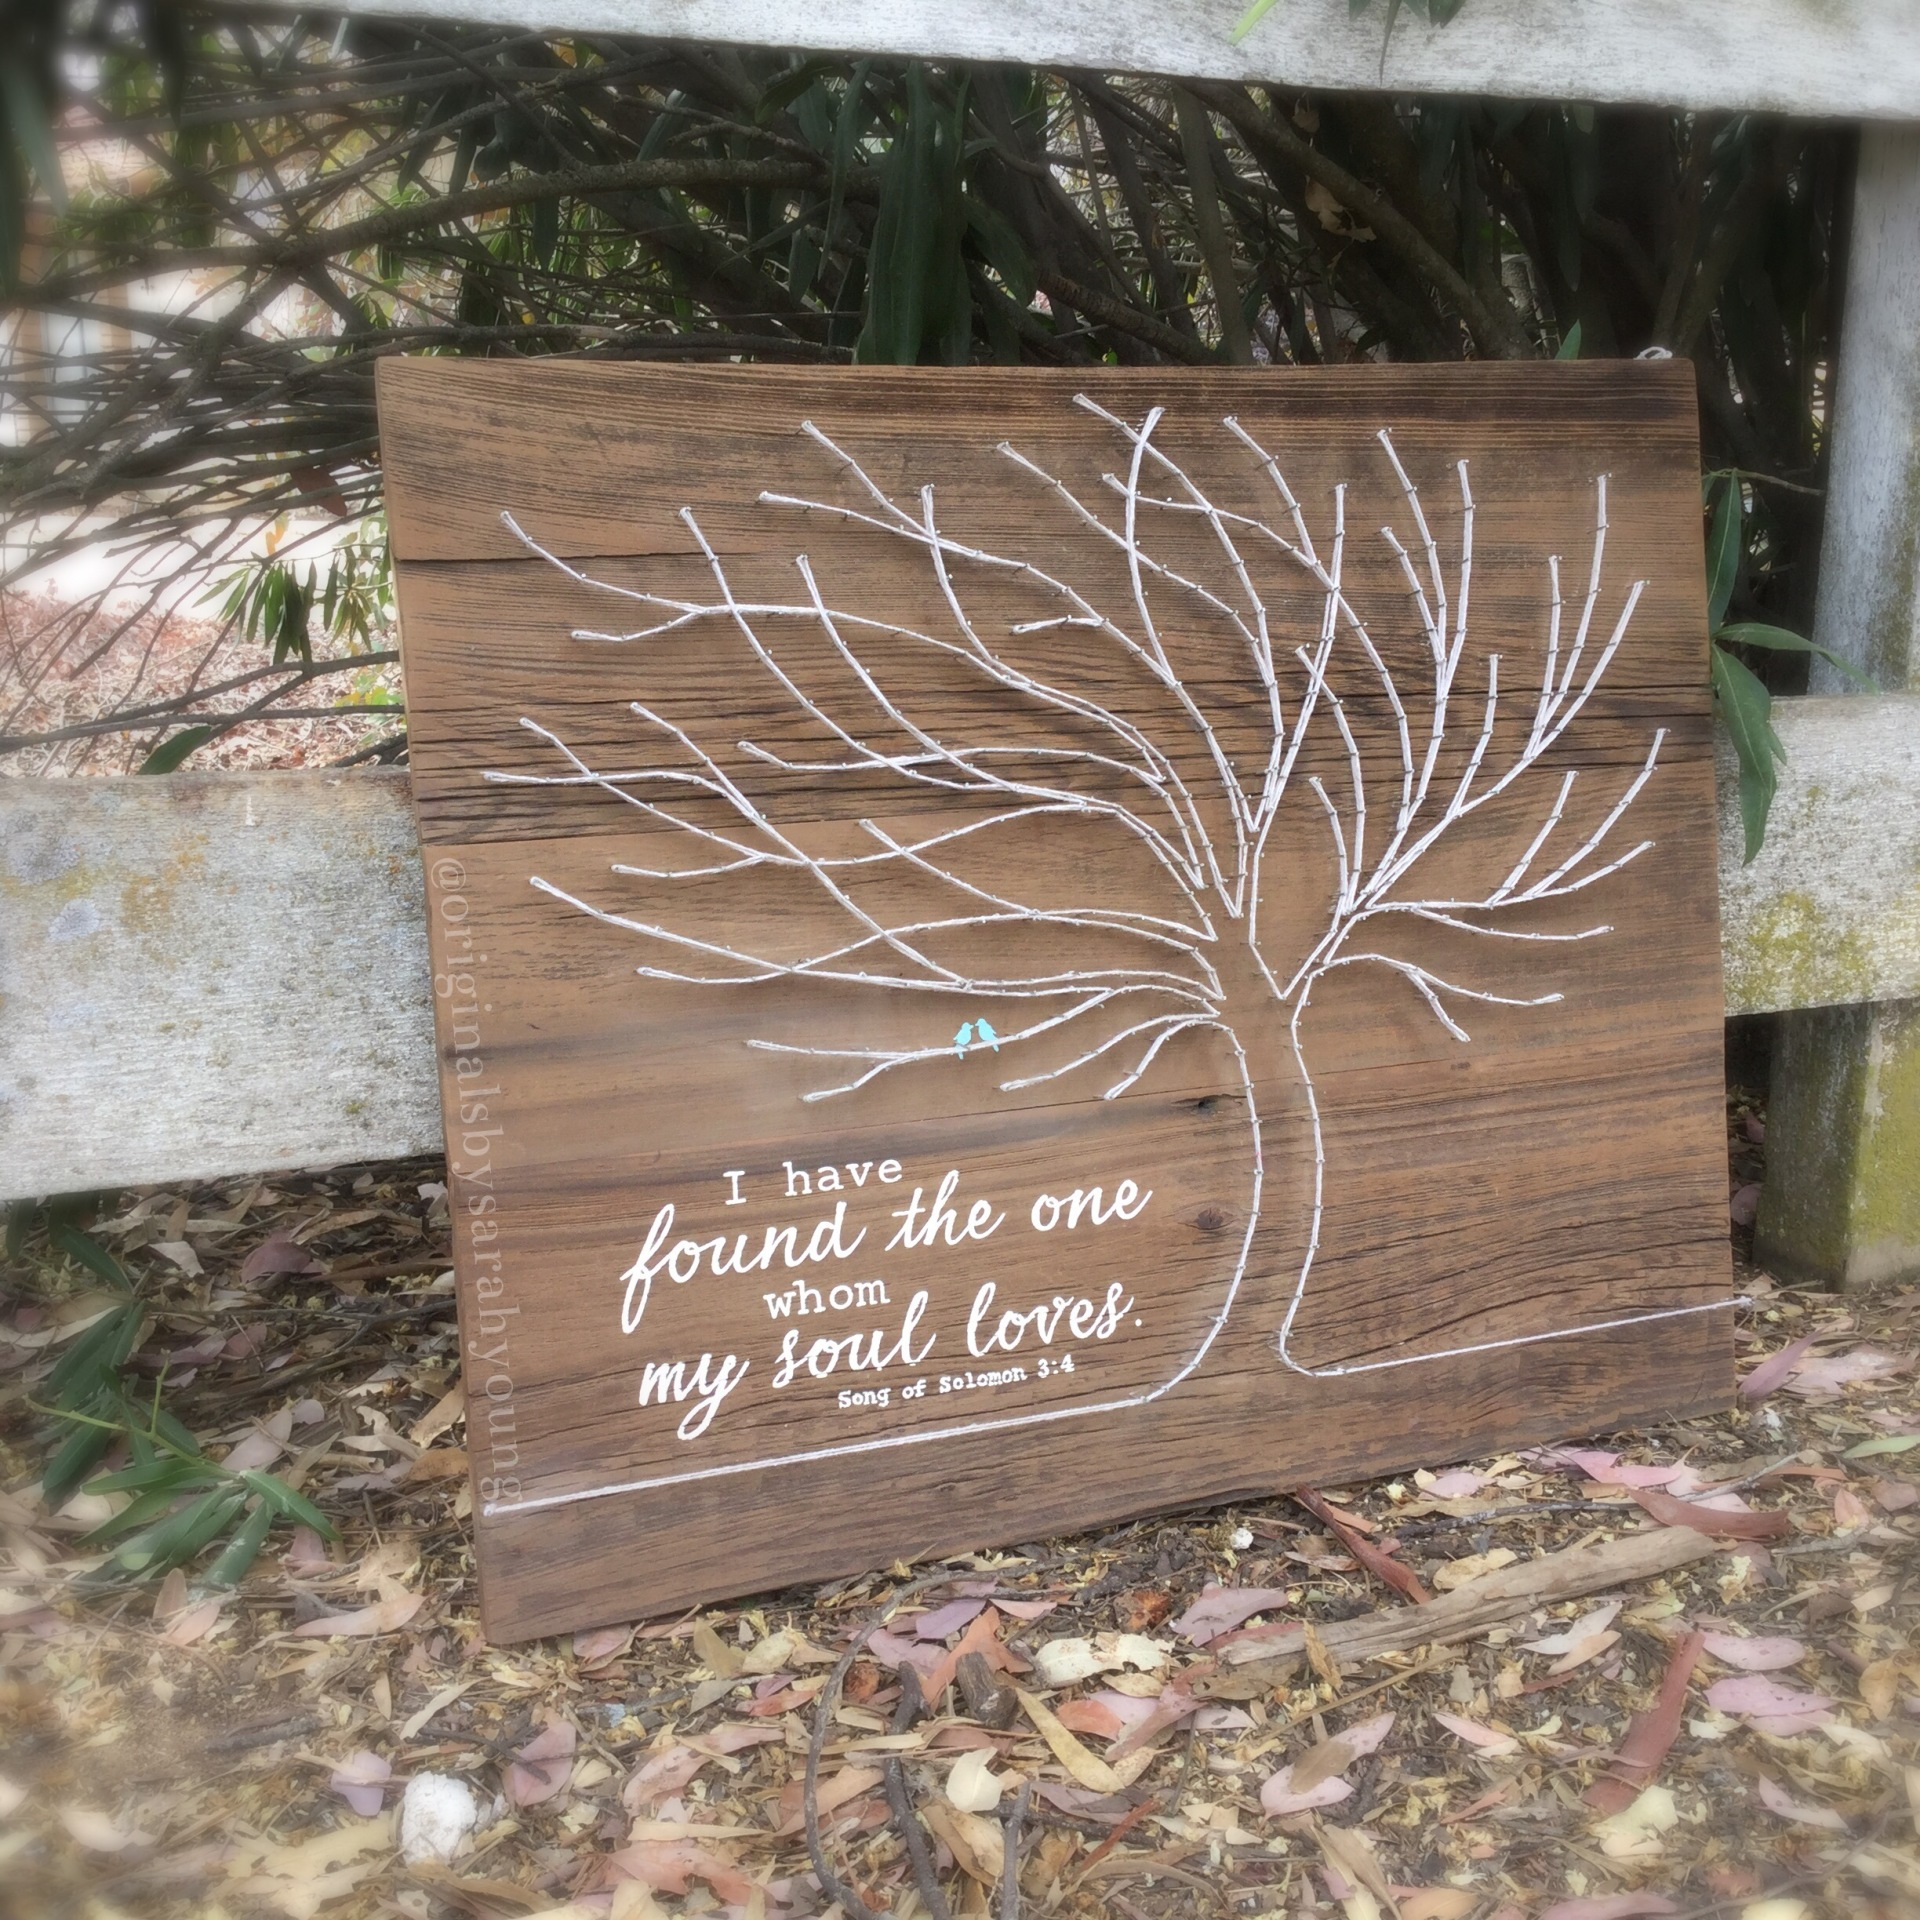 Whimsical String Tree with Hand-Painted Verse